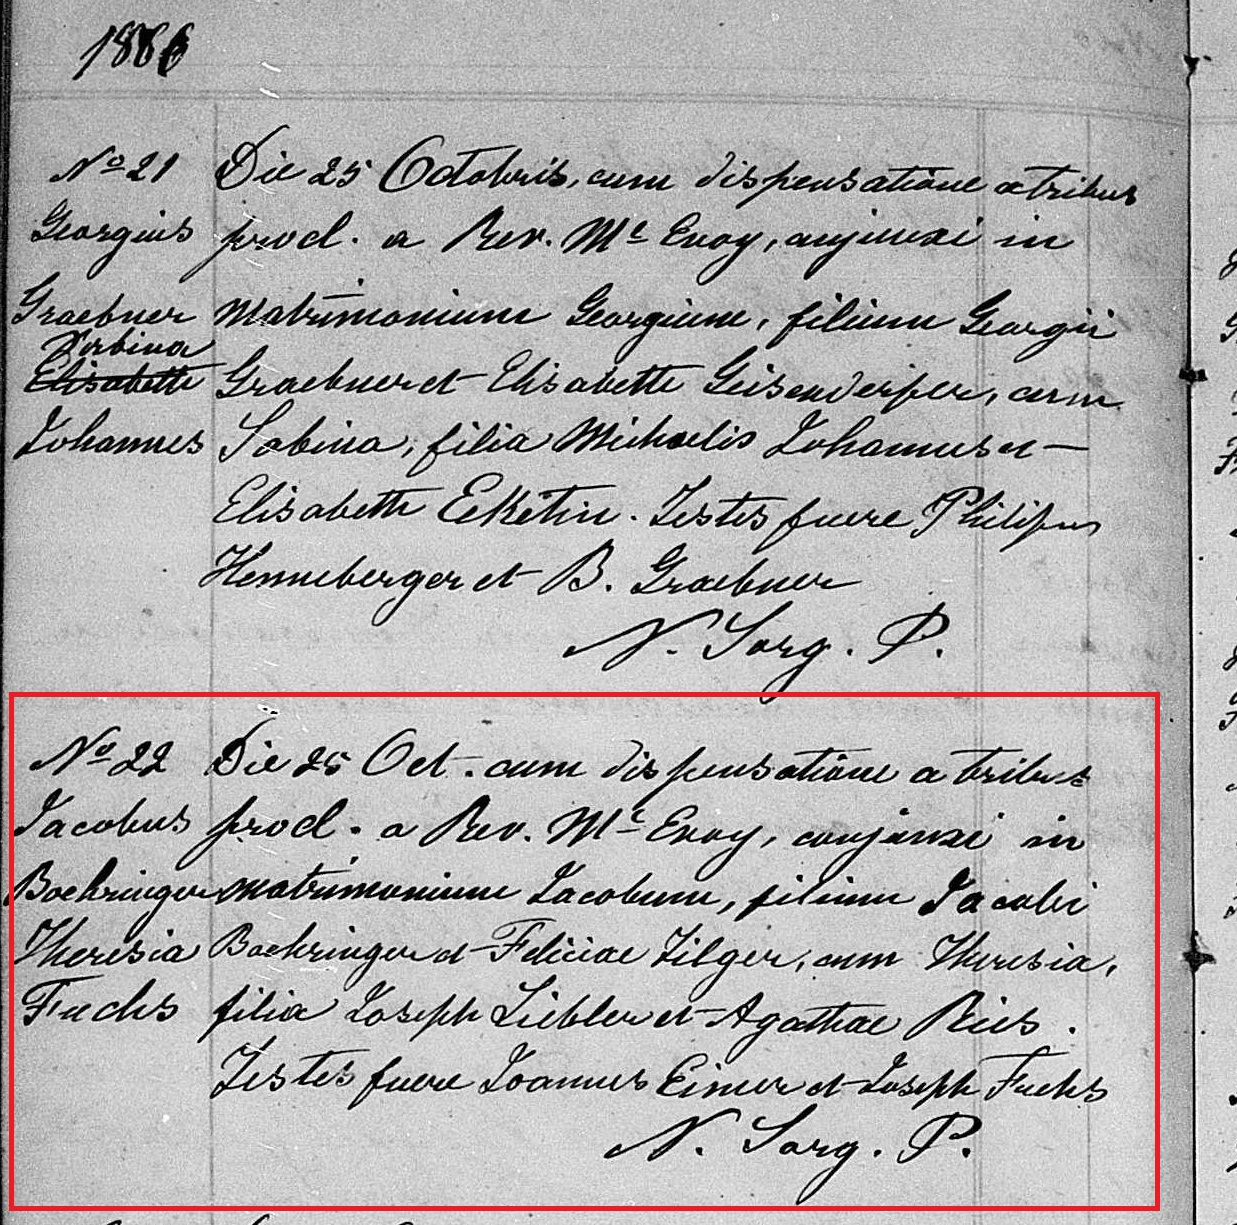 Jacob Boehringer and Theresa Liebler marriage 1866 marked